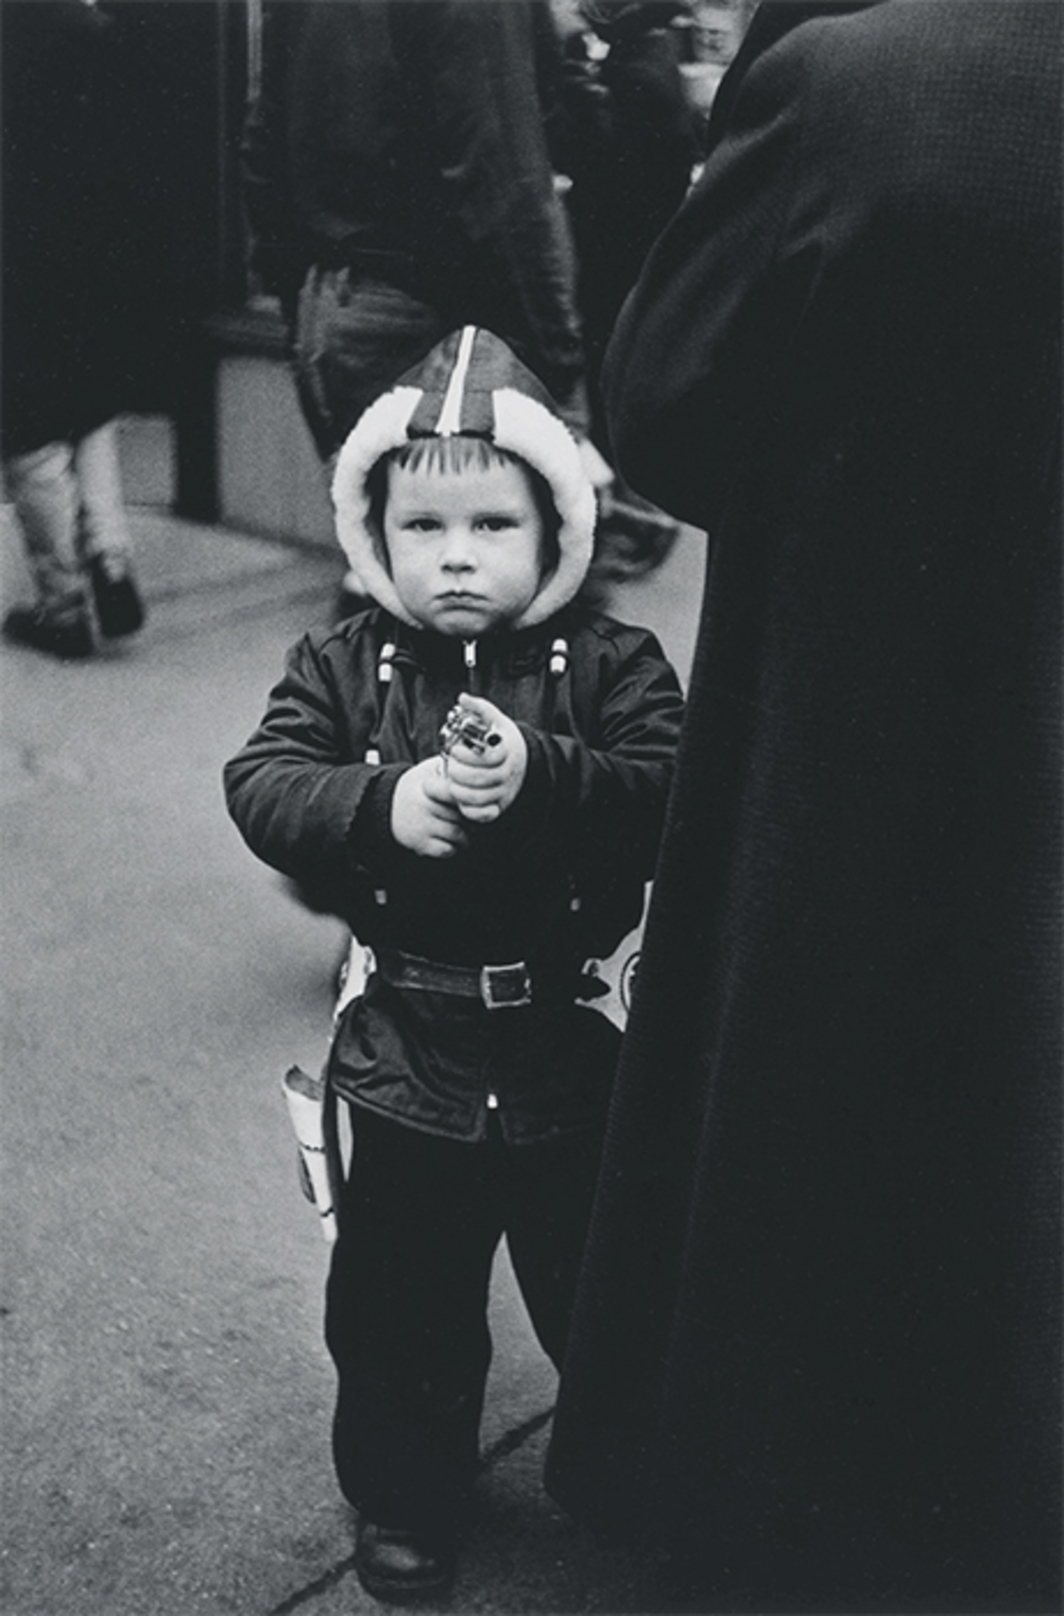 "Diane Arbus, Kid in a hooded jacket aiming a gun, N.Y.C. 1957, gelatin silver print, 8 1/2 × 5"". © The Estate of Diane Arbus, LLC. All Rights Reserved."